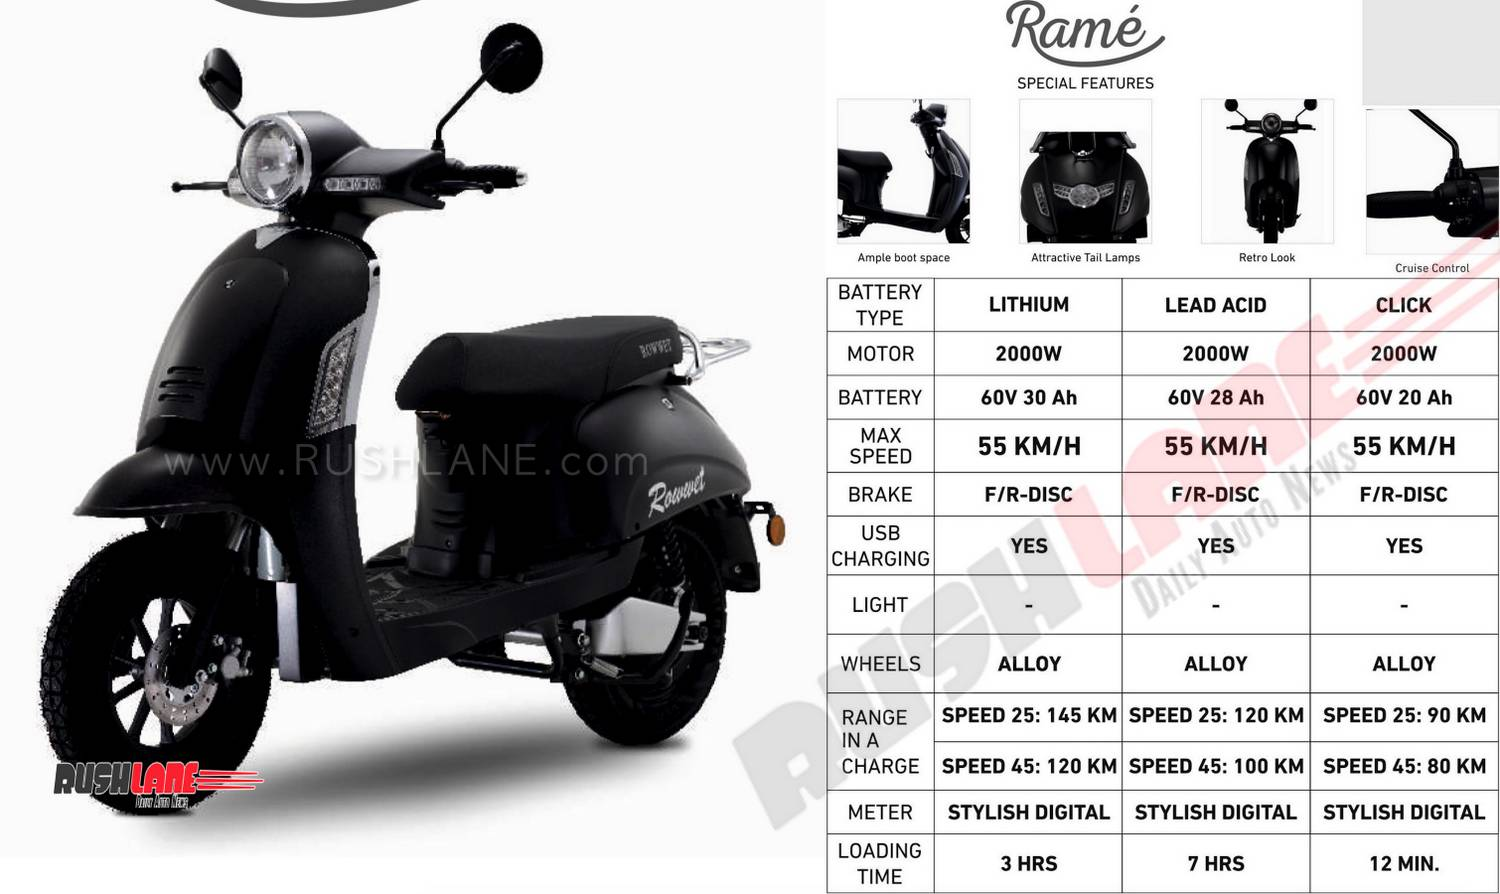 Rowwet Rame electric scooter